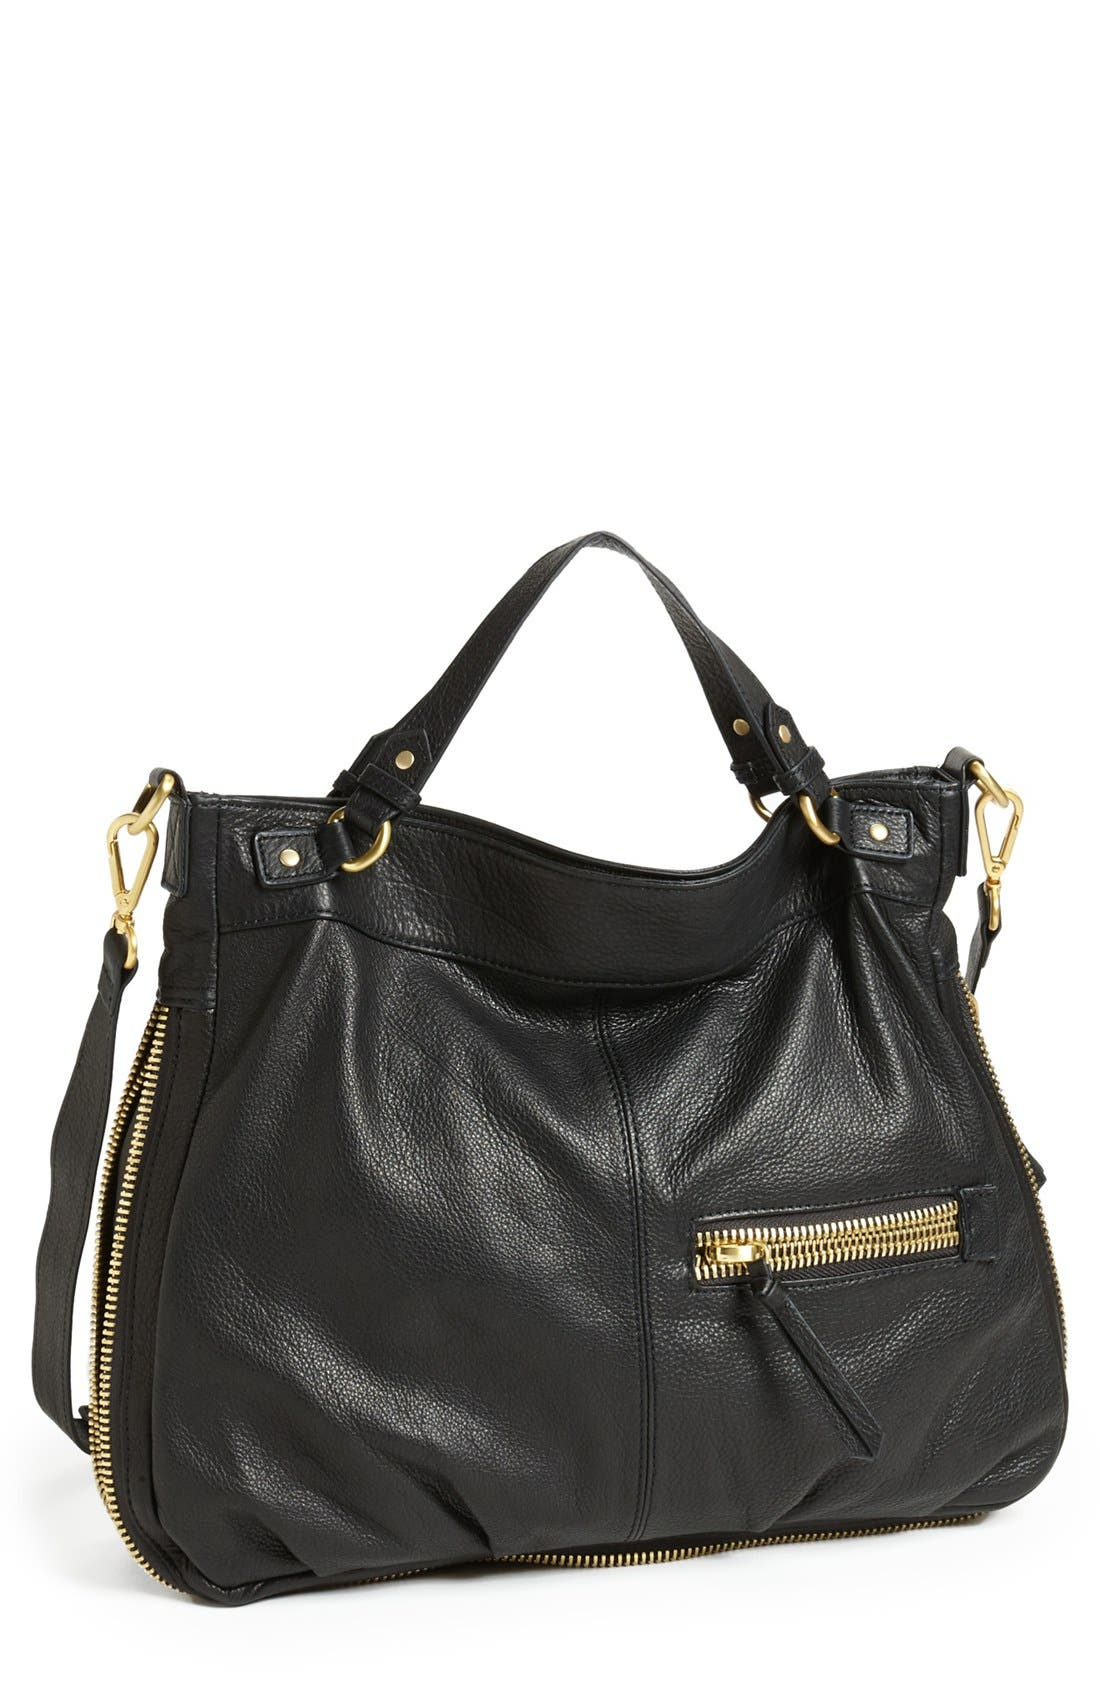 Main Image - Steven by Steve Madden 'Hugo' Satchel